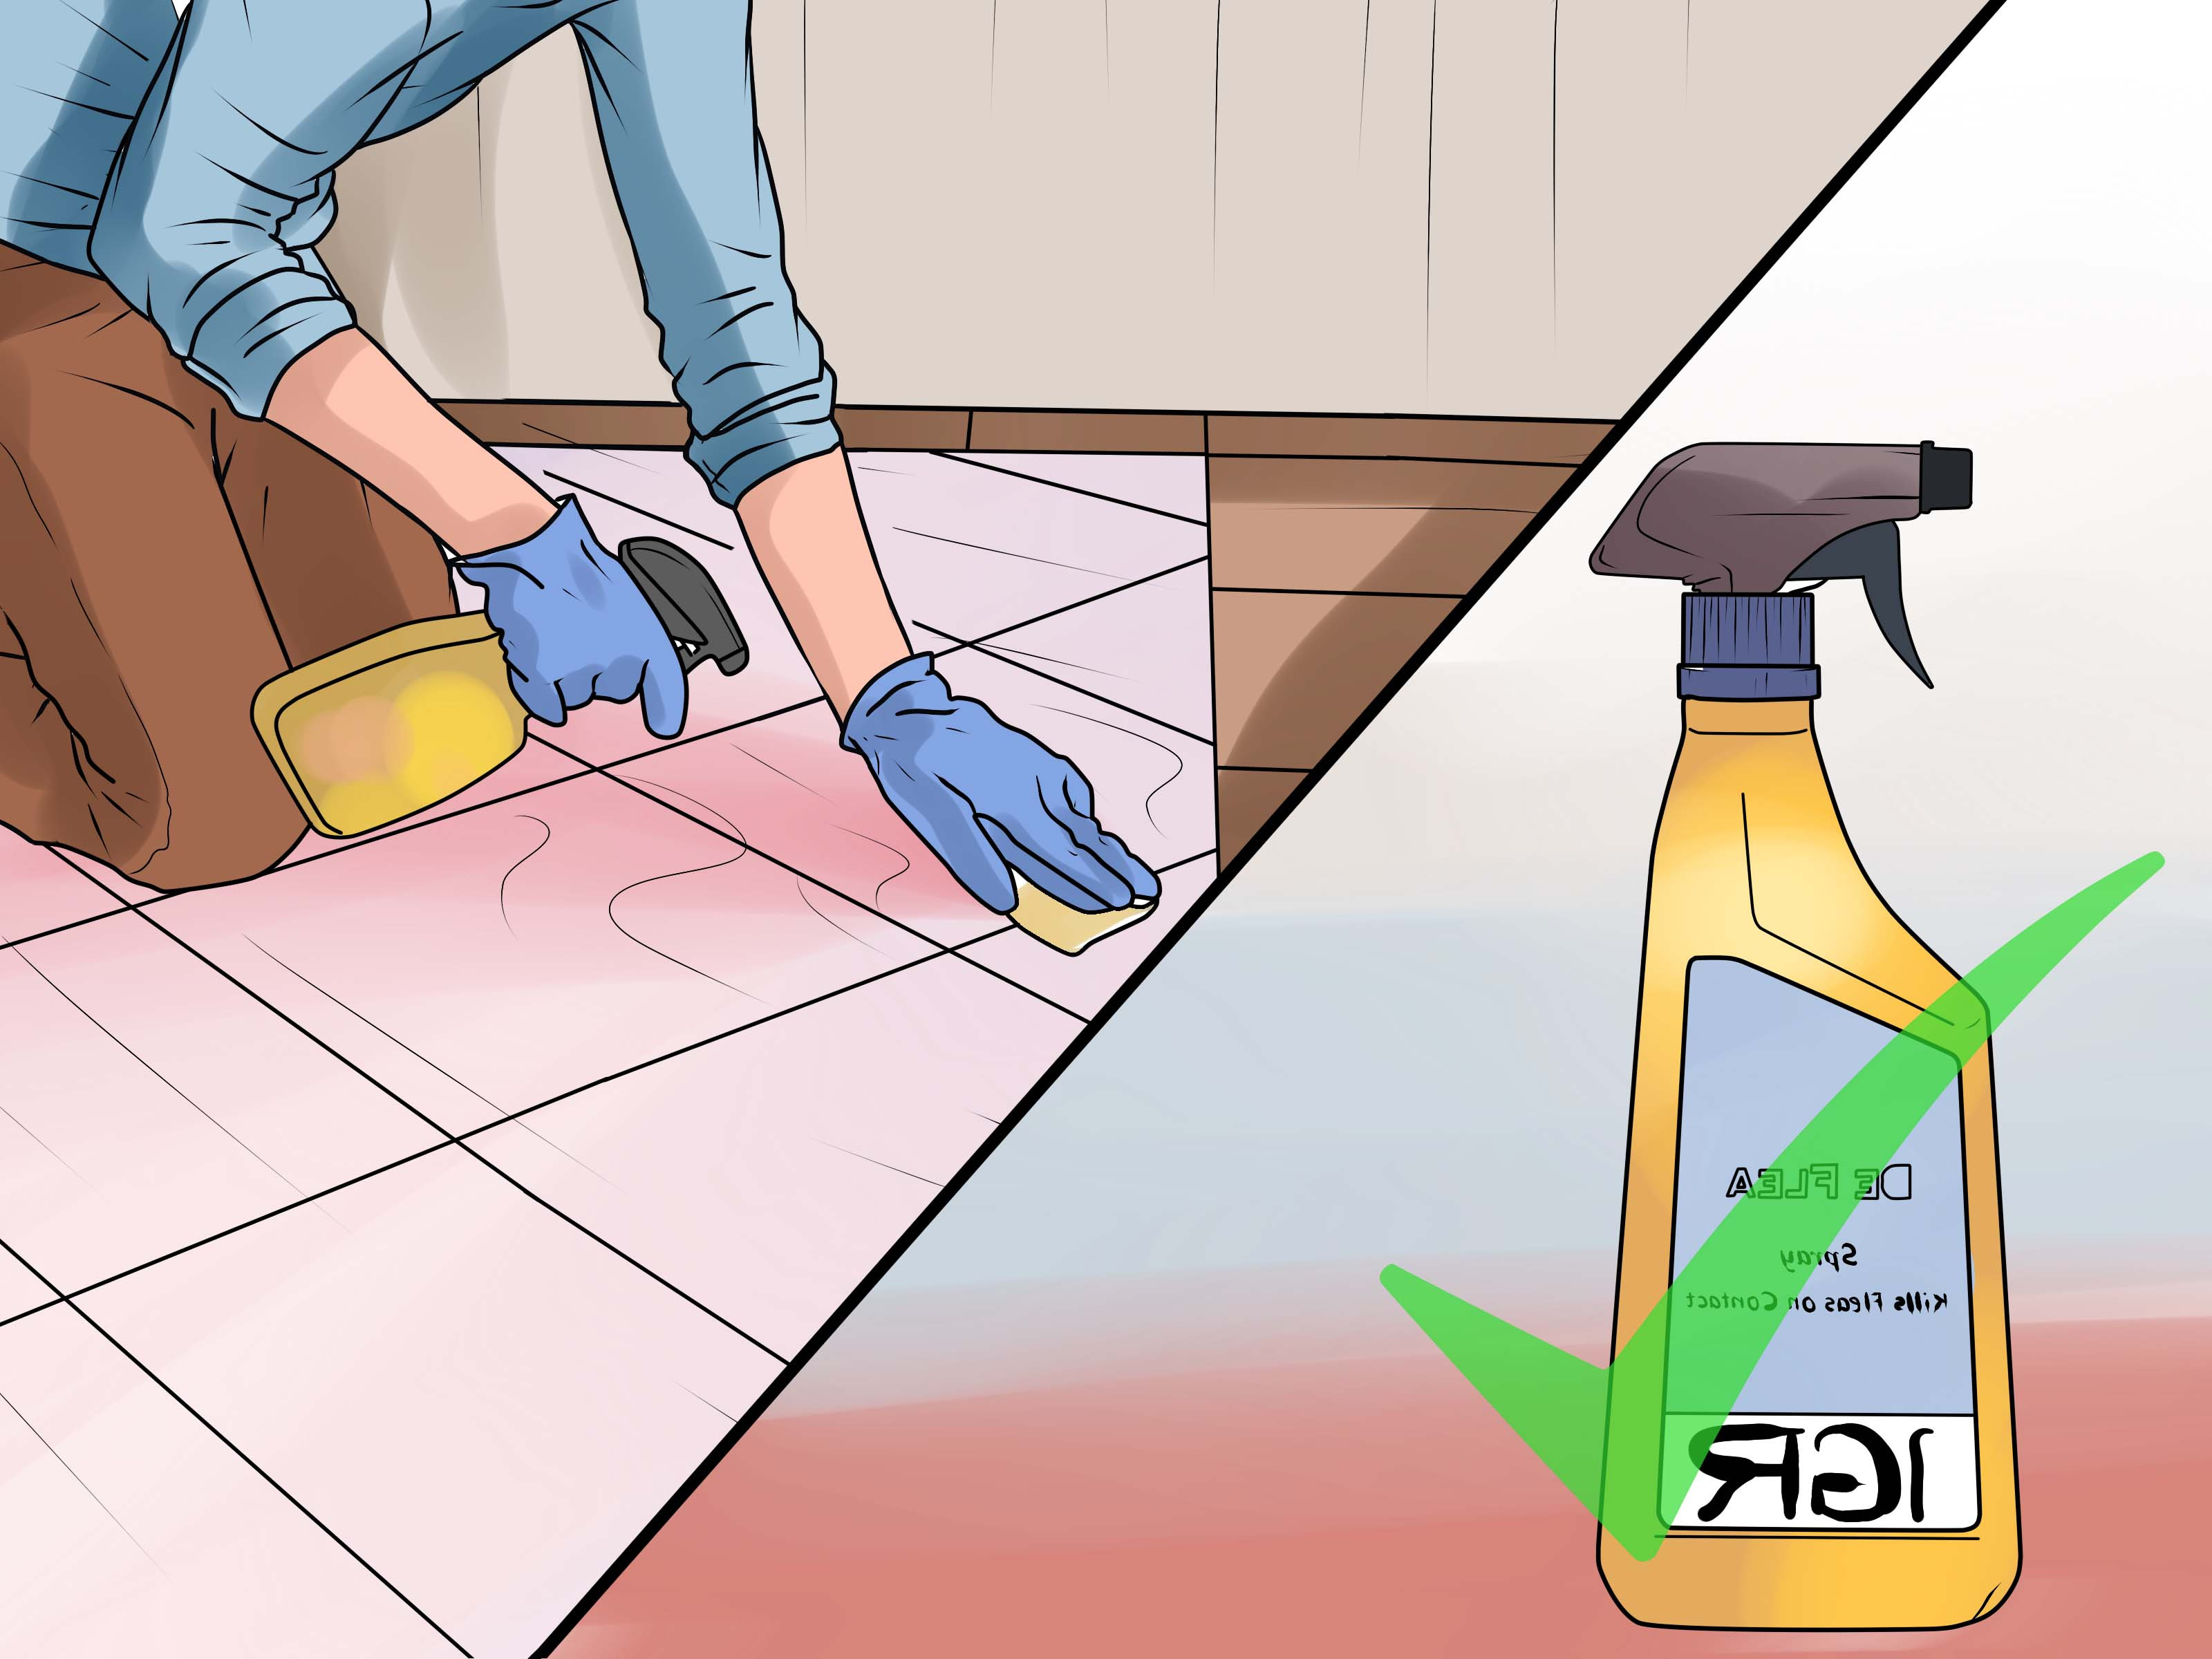 hardwood floor cleaner pet safe of 5 ways to rid your pet of fleas wikihow with regard to rid your pet of fleas step 23